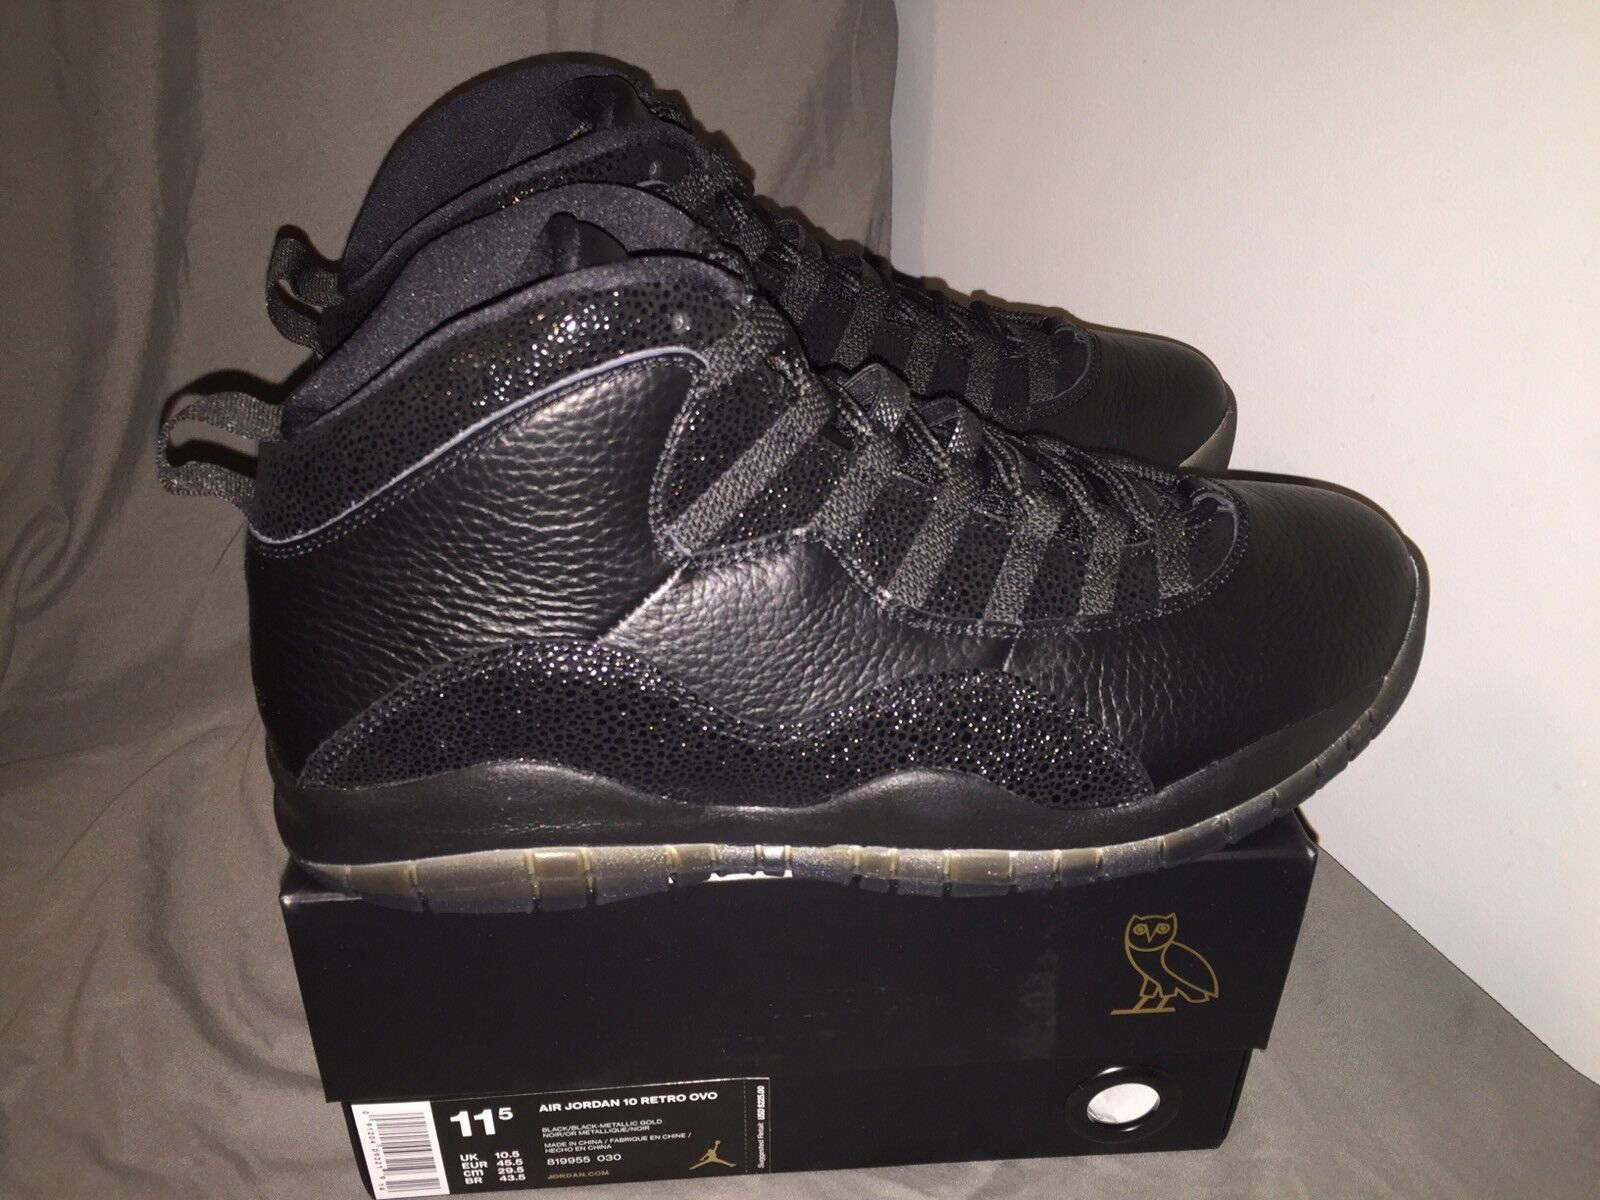 Jordan X OVO All Star Game Shoes Comfortable Comfortable and good-looking